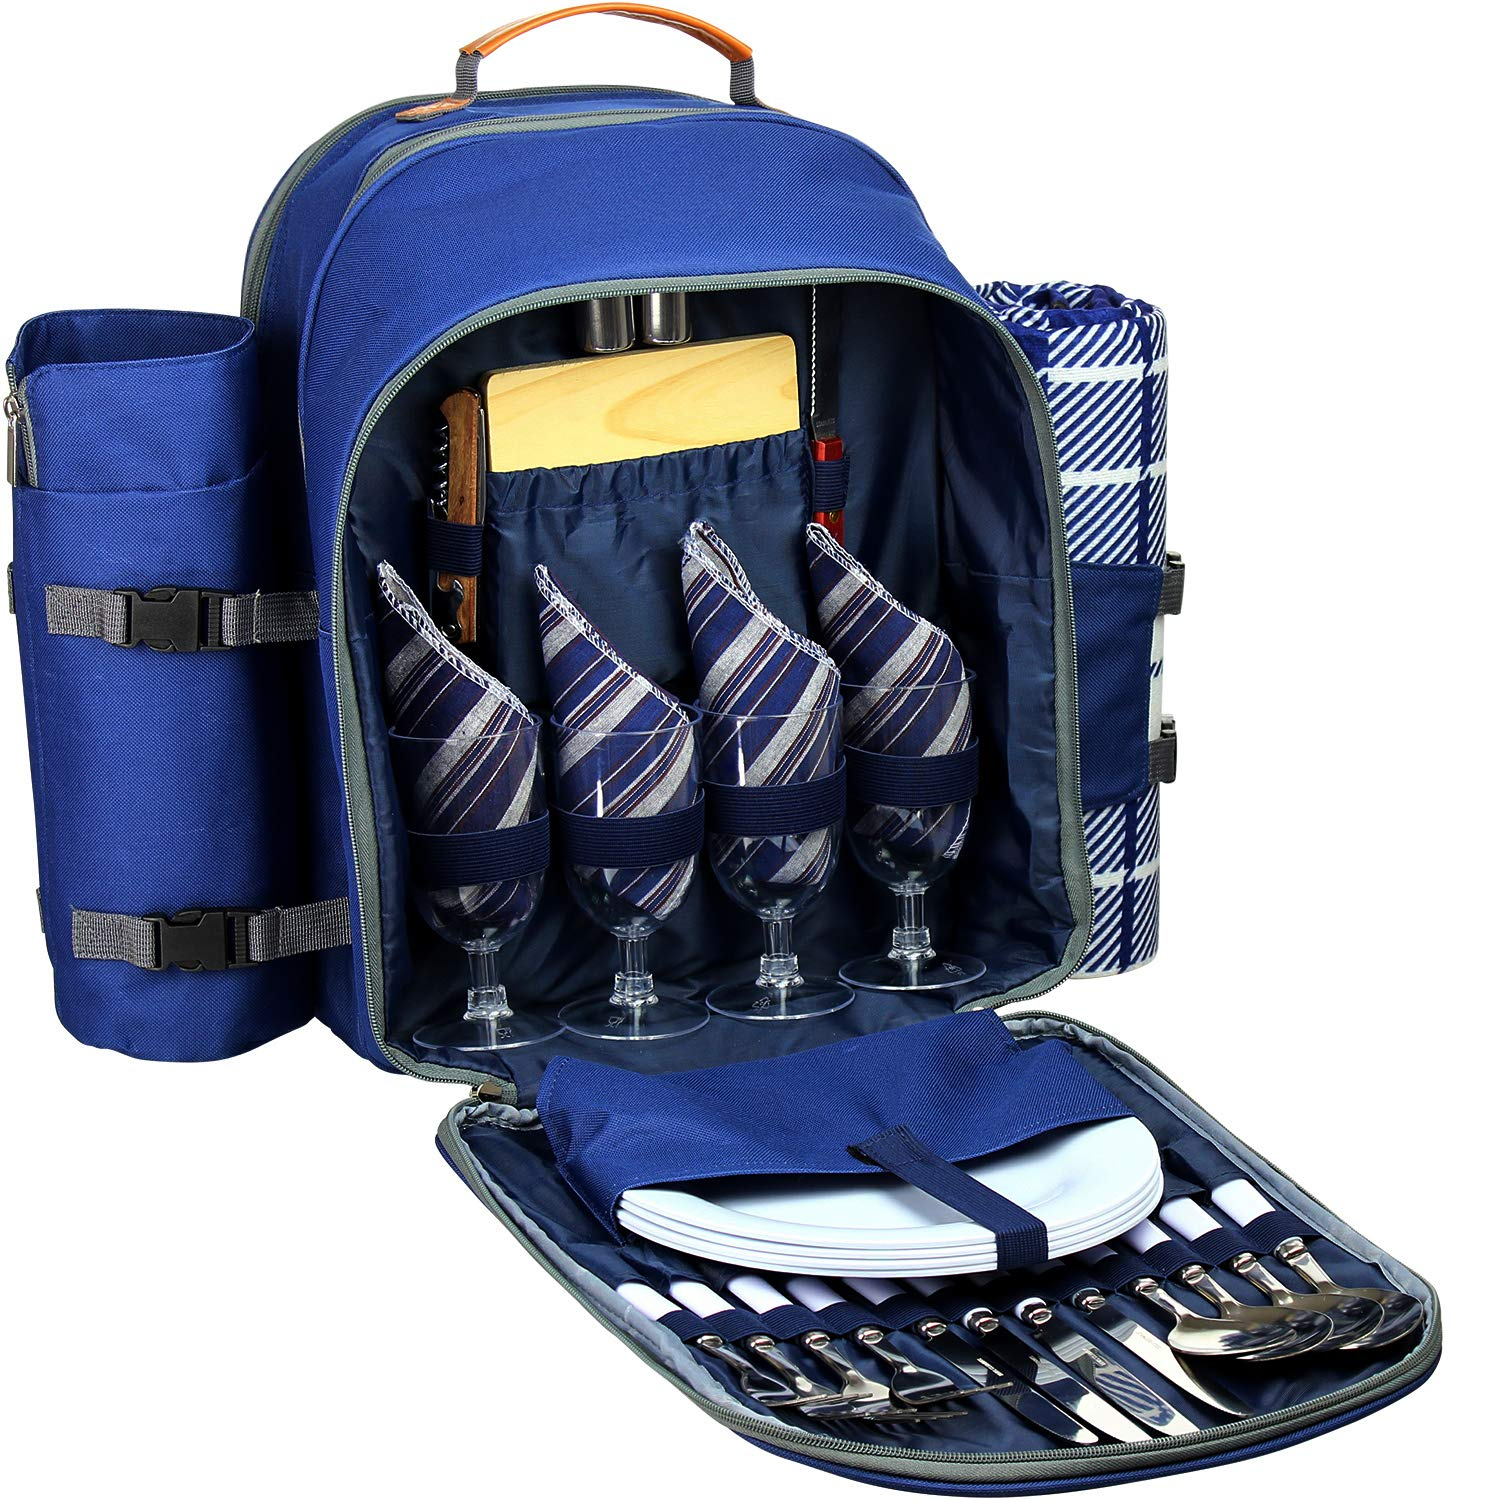 Picnic Backpack Set for 4 - Deluxe Collection | Picnic Set with Insulated Cooler Compartment, Fleece Blanket, Detachable Wine Holder, Cutlery Set for Family/Friends Camping, Road Trip, Hike, Adventure